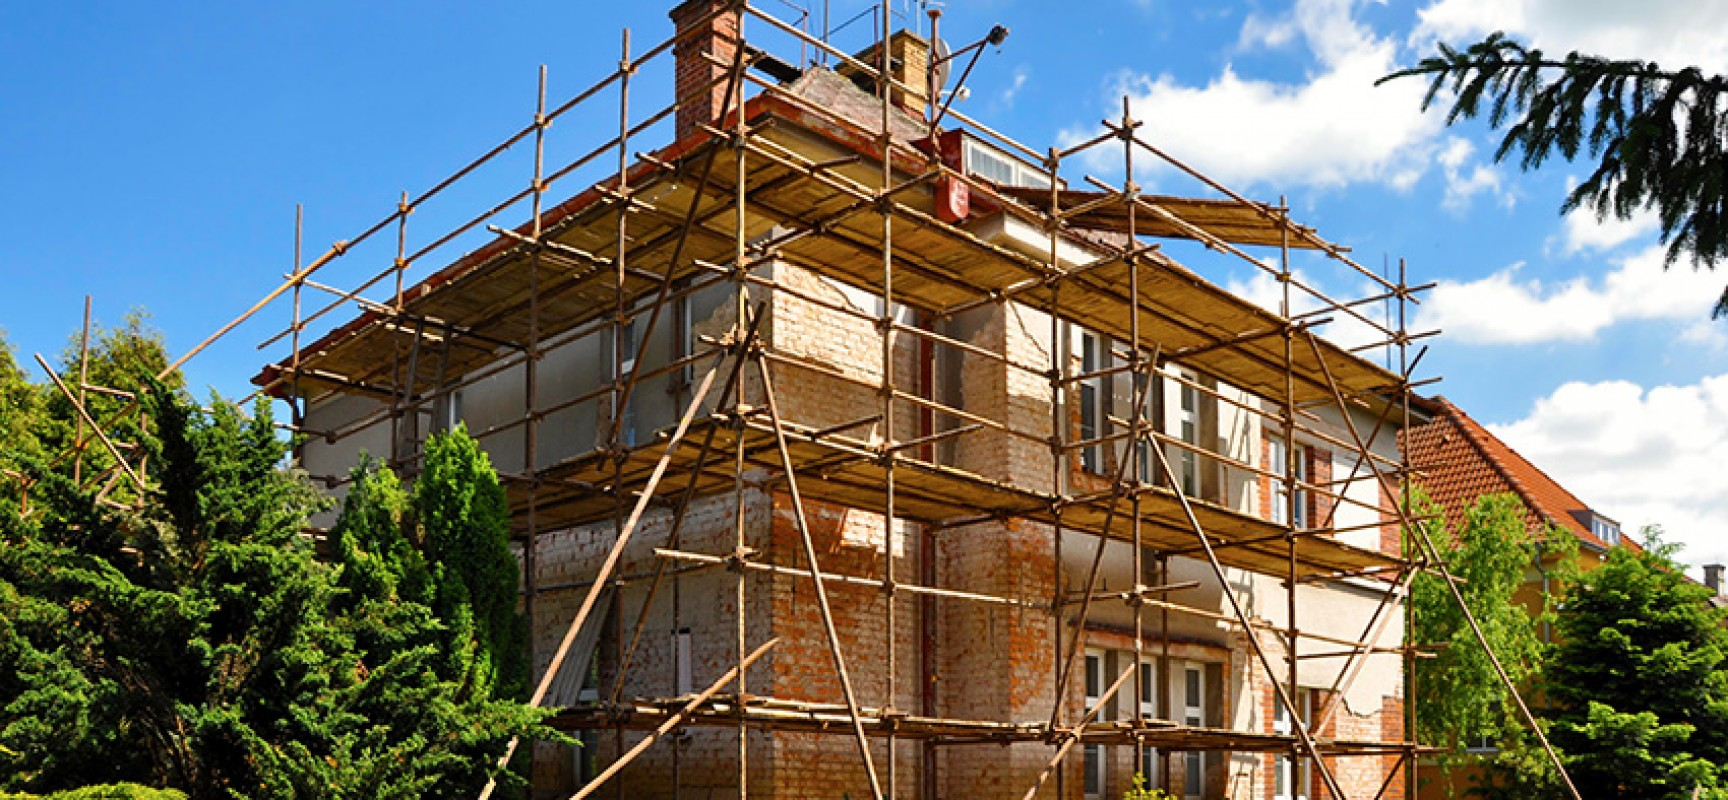 Reasons Why You Should Move Out During Building Work At Home